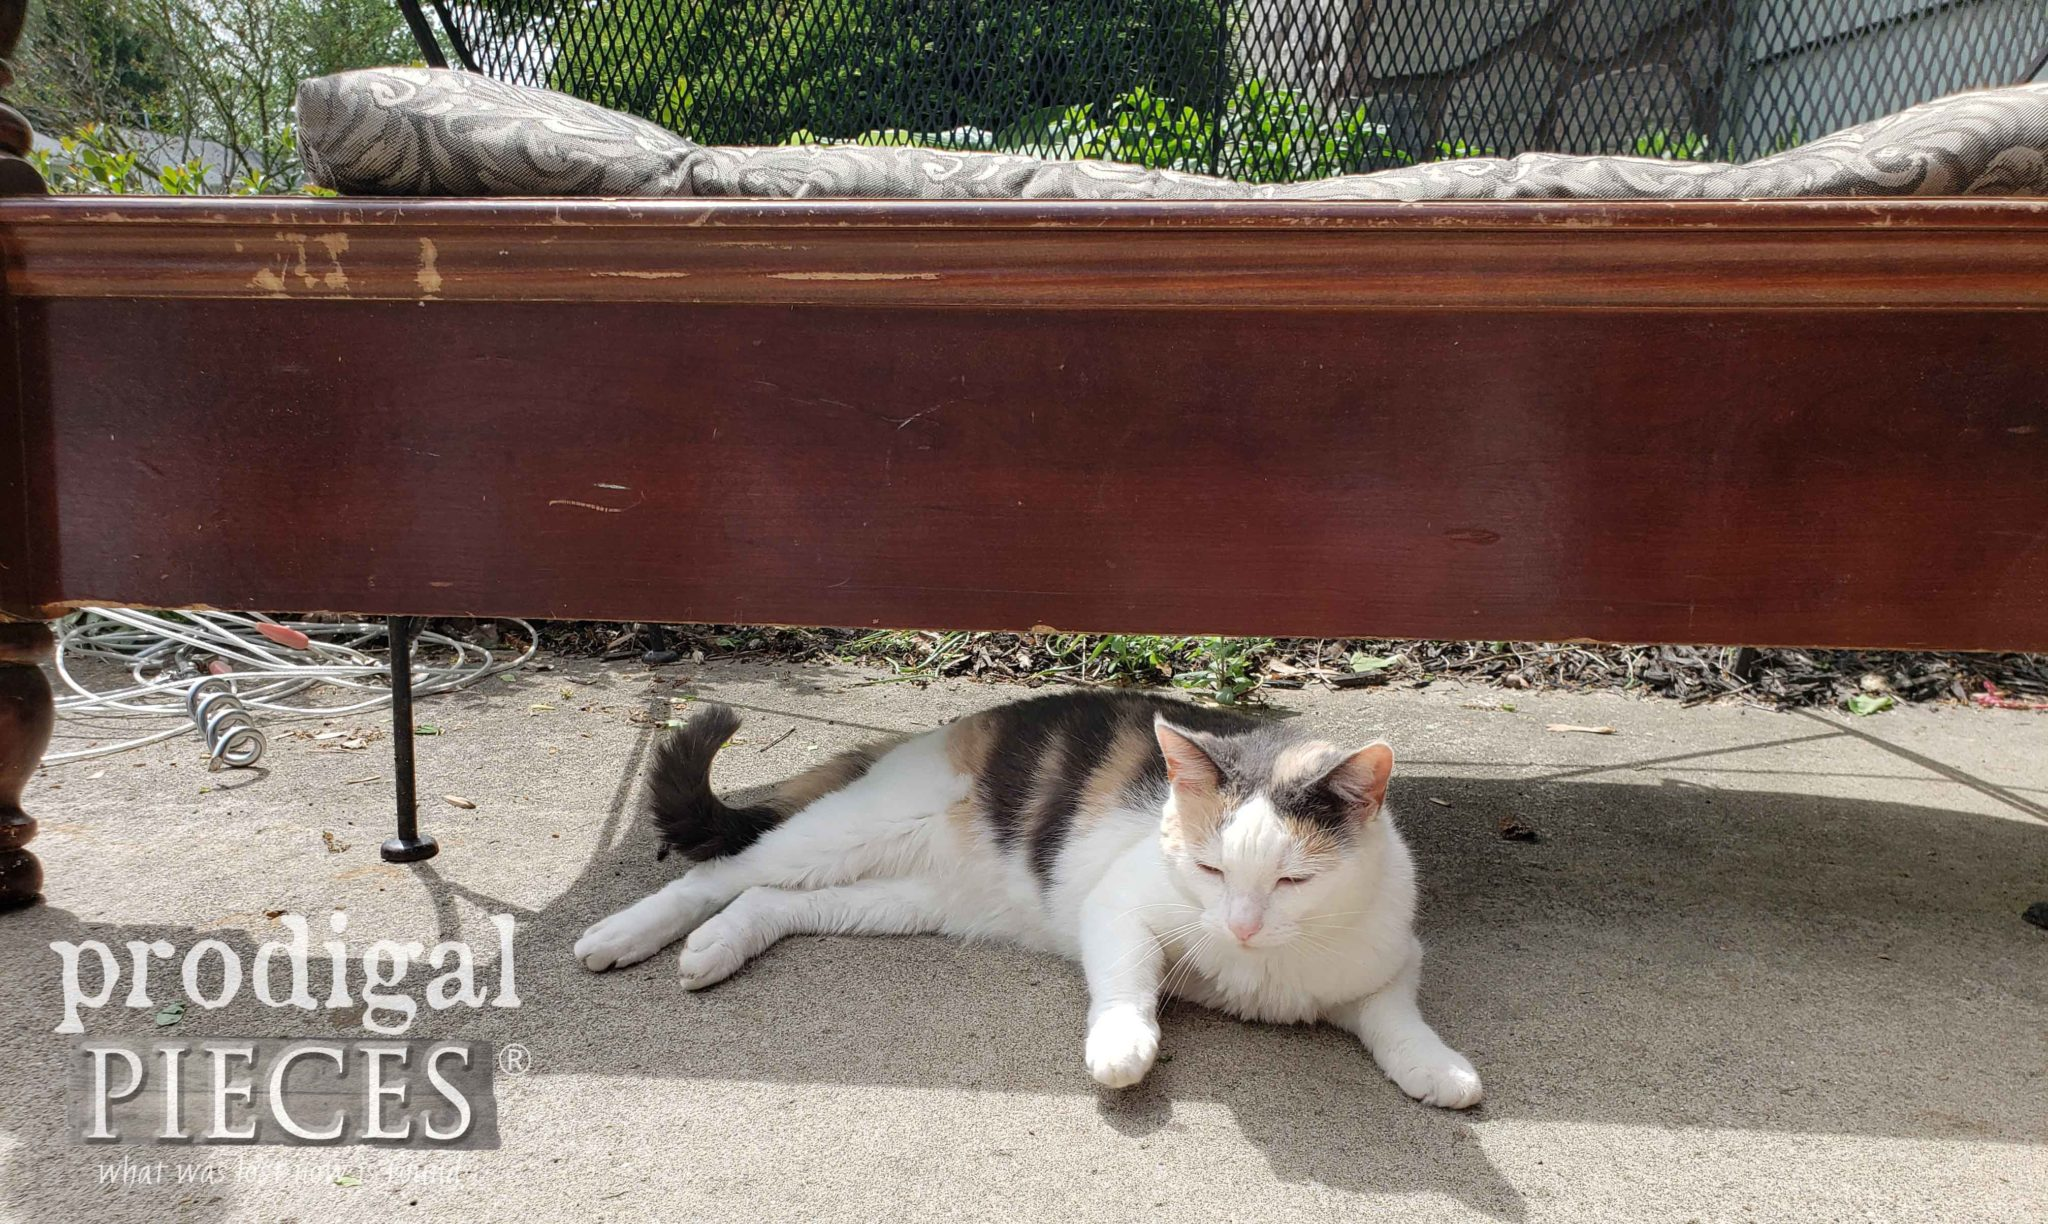 Calico Cat Laying Under Vintage Footboard | prodigalpieces.com